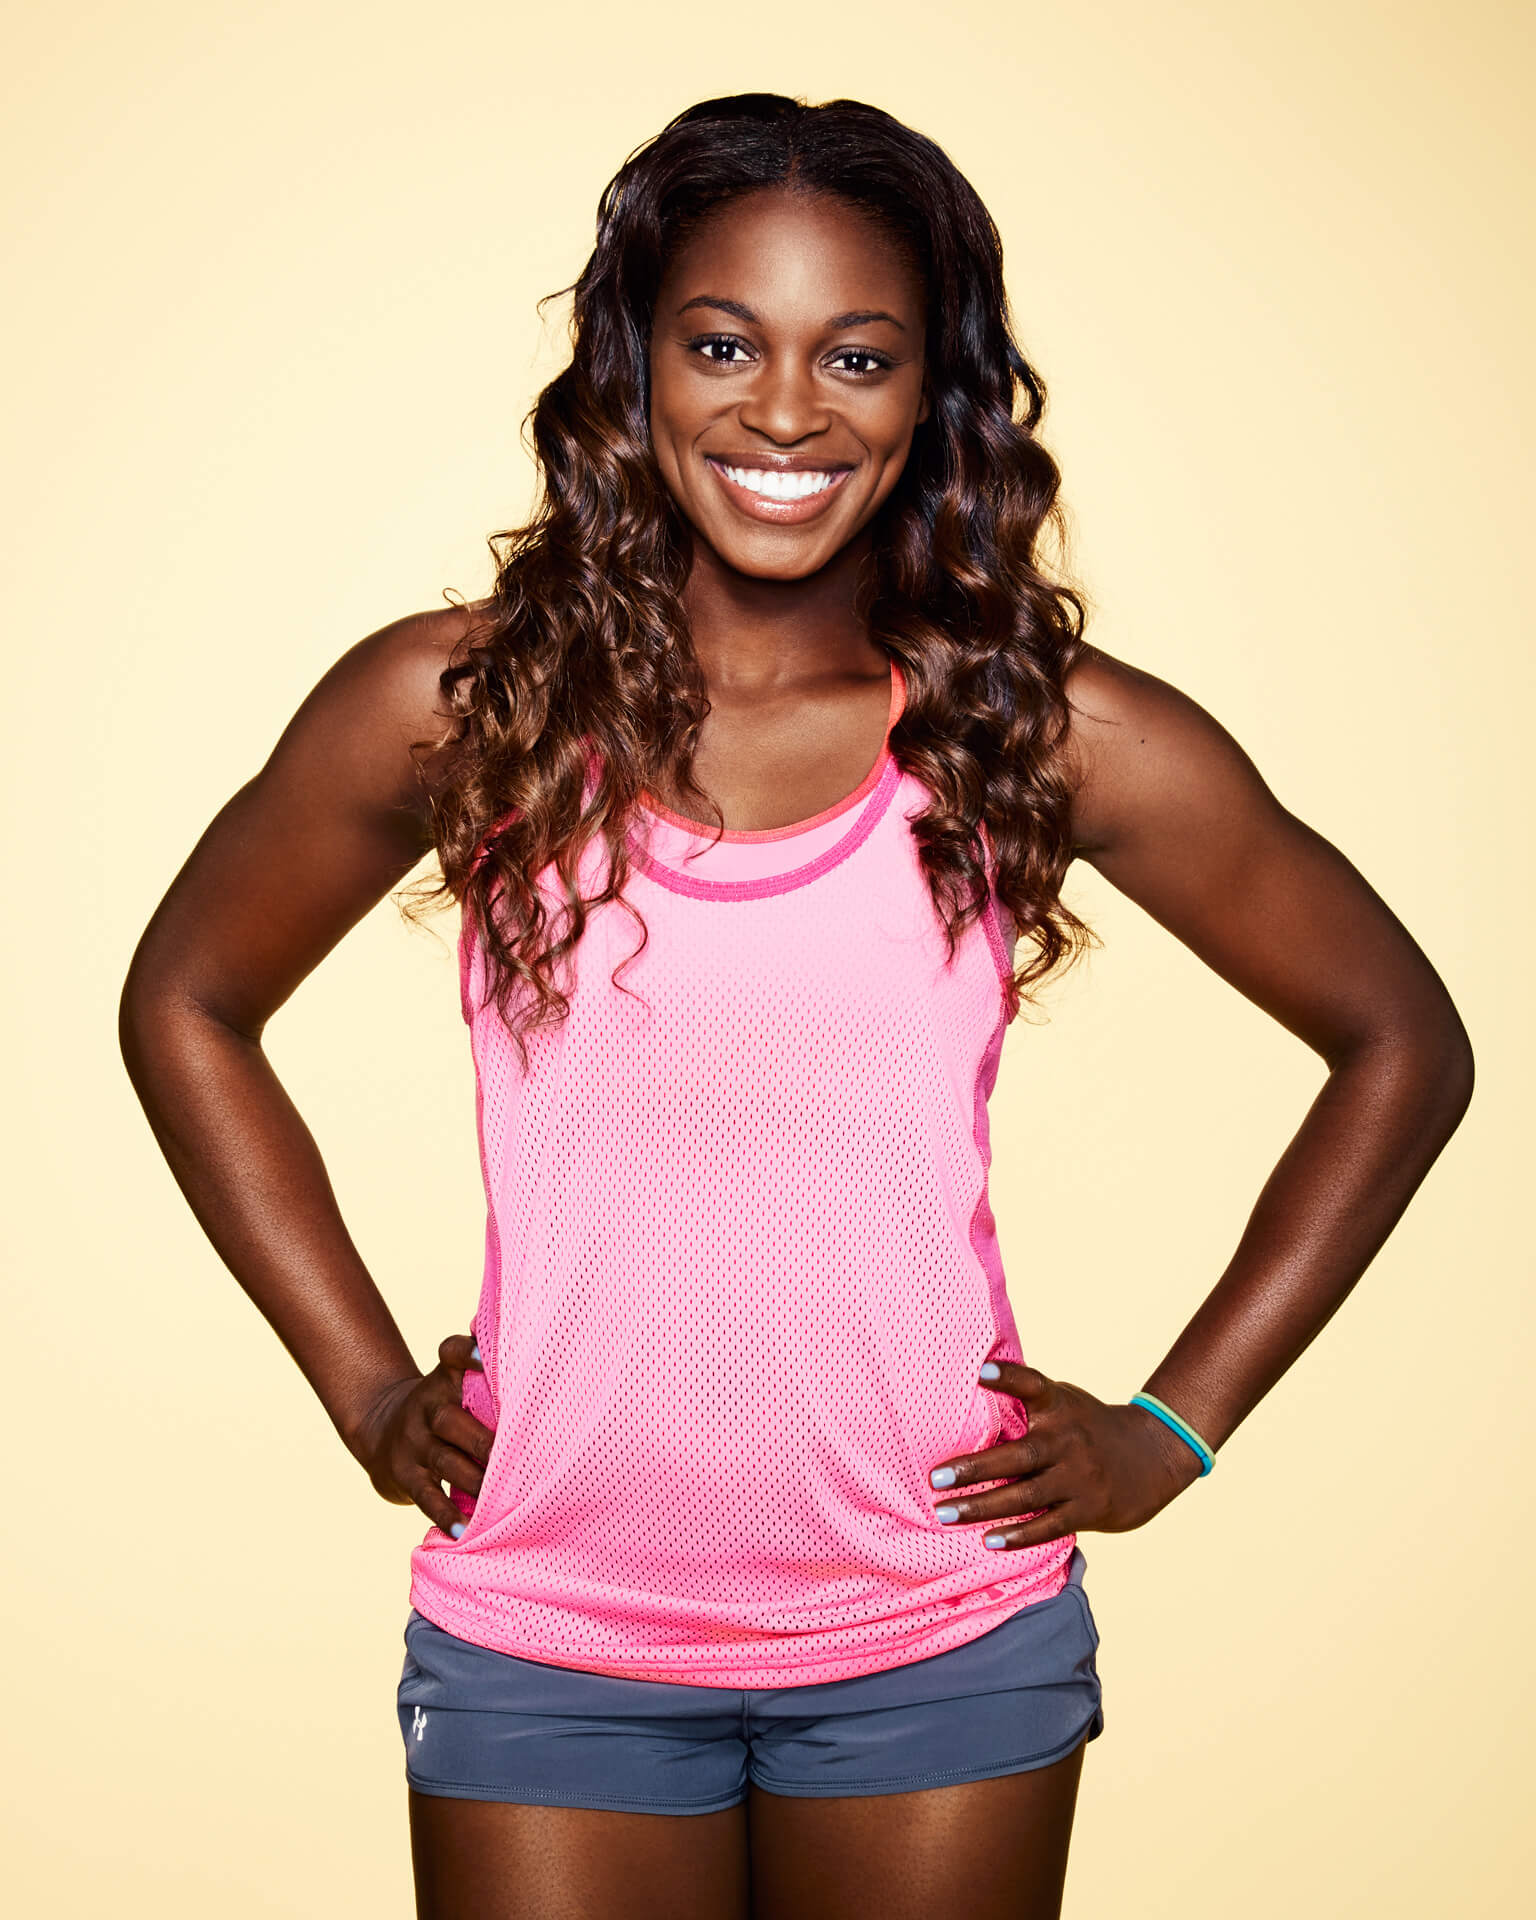 Sloane Stephens hot picturtes